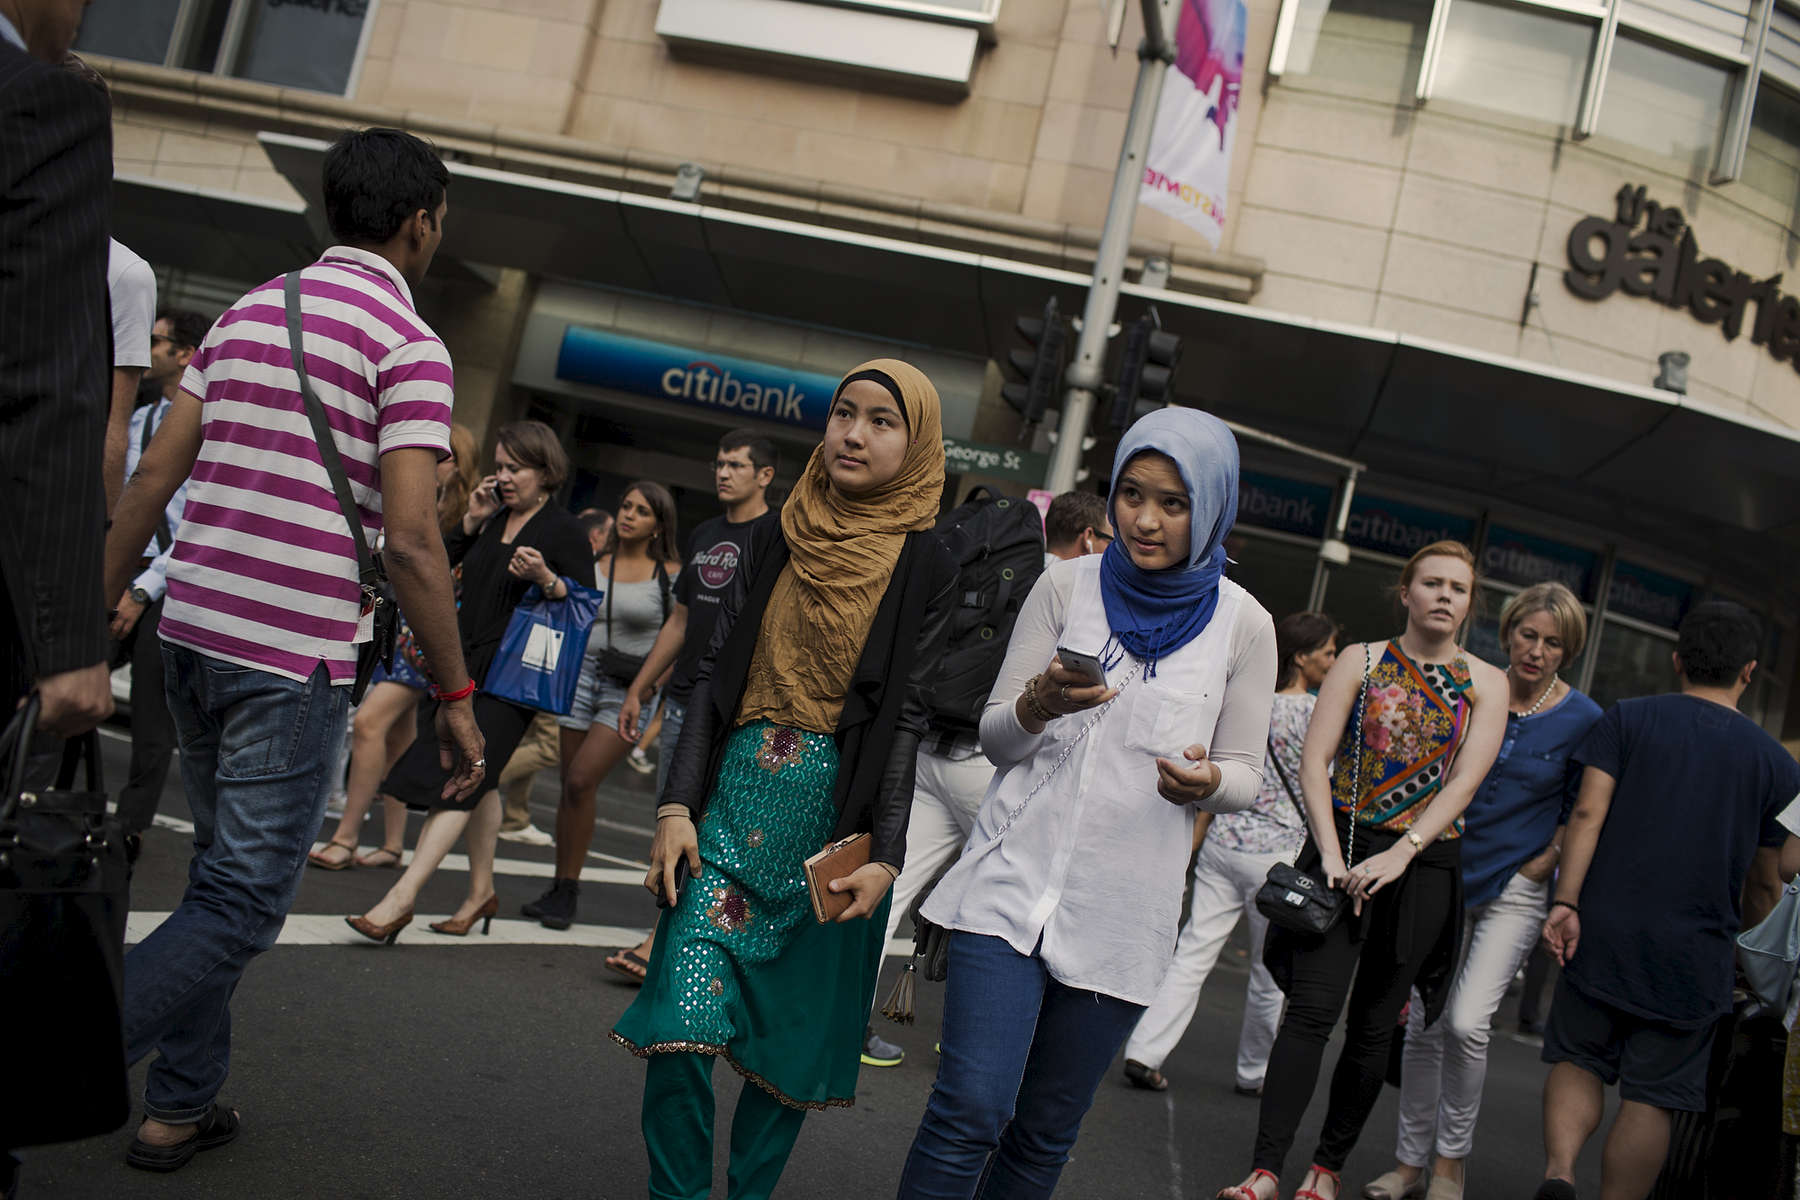 Aziza (right) and a friend cross a busy intersection in Sydney\'s CBD. Both youn women are Hazara. The Hazara are an ethnic group from Afghanistan who have been regularly targeted for their religious difference as well as  different physical appearance to the Pashtun dominated south of Afghanistan.